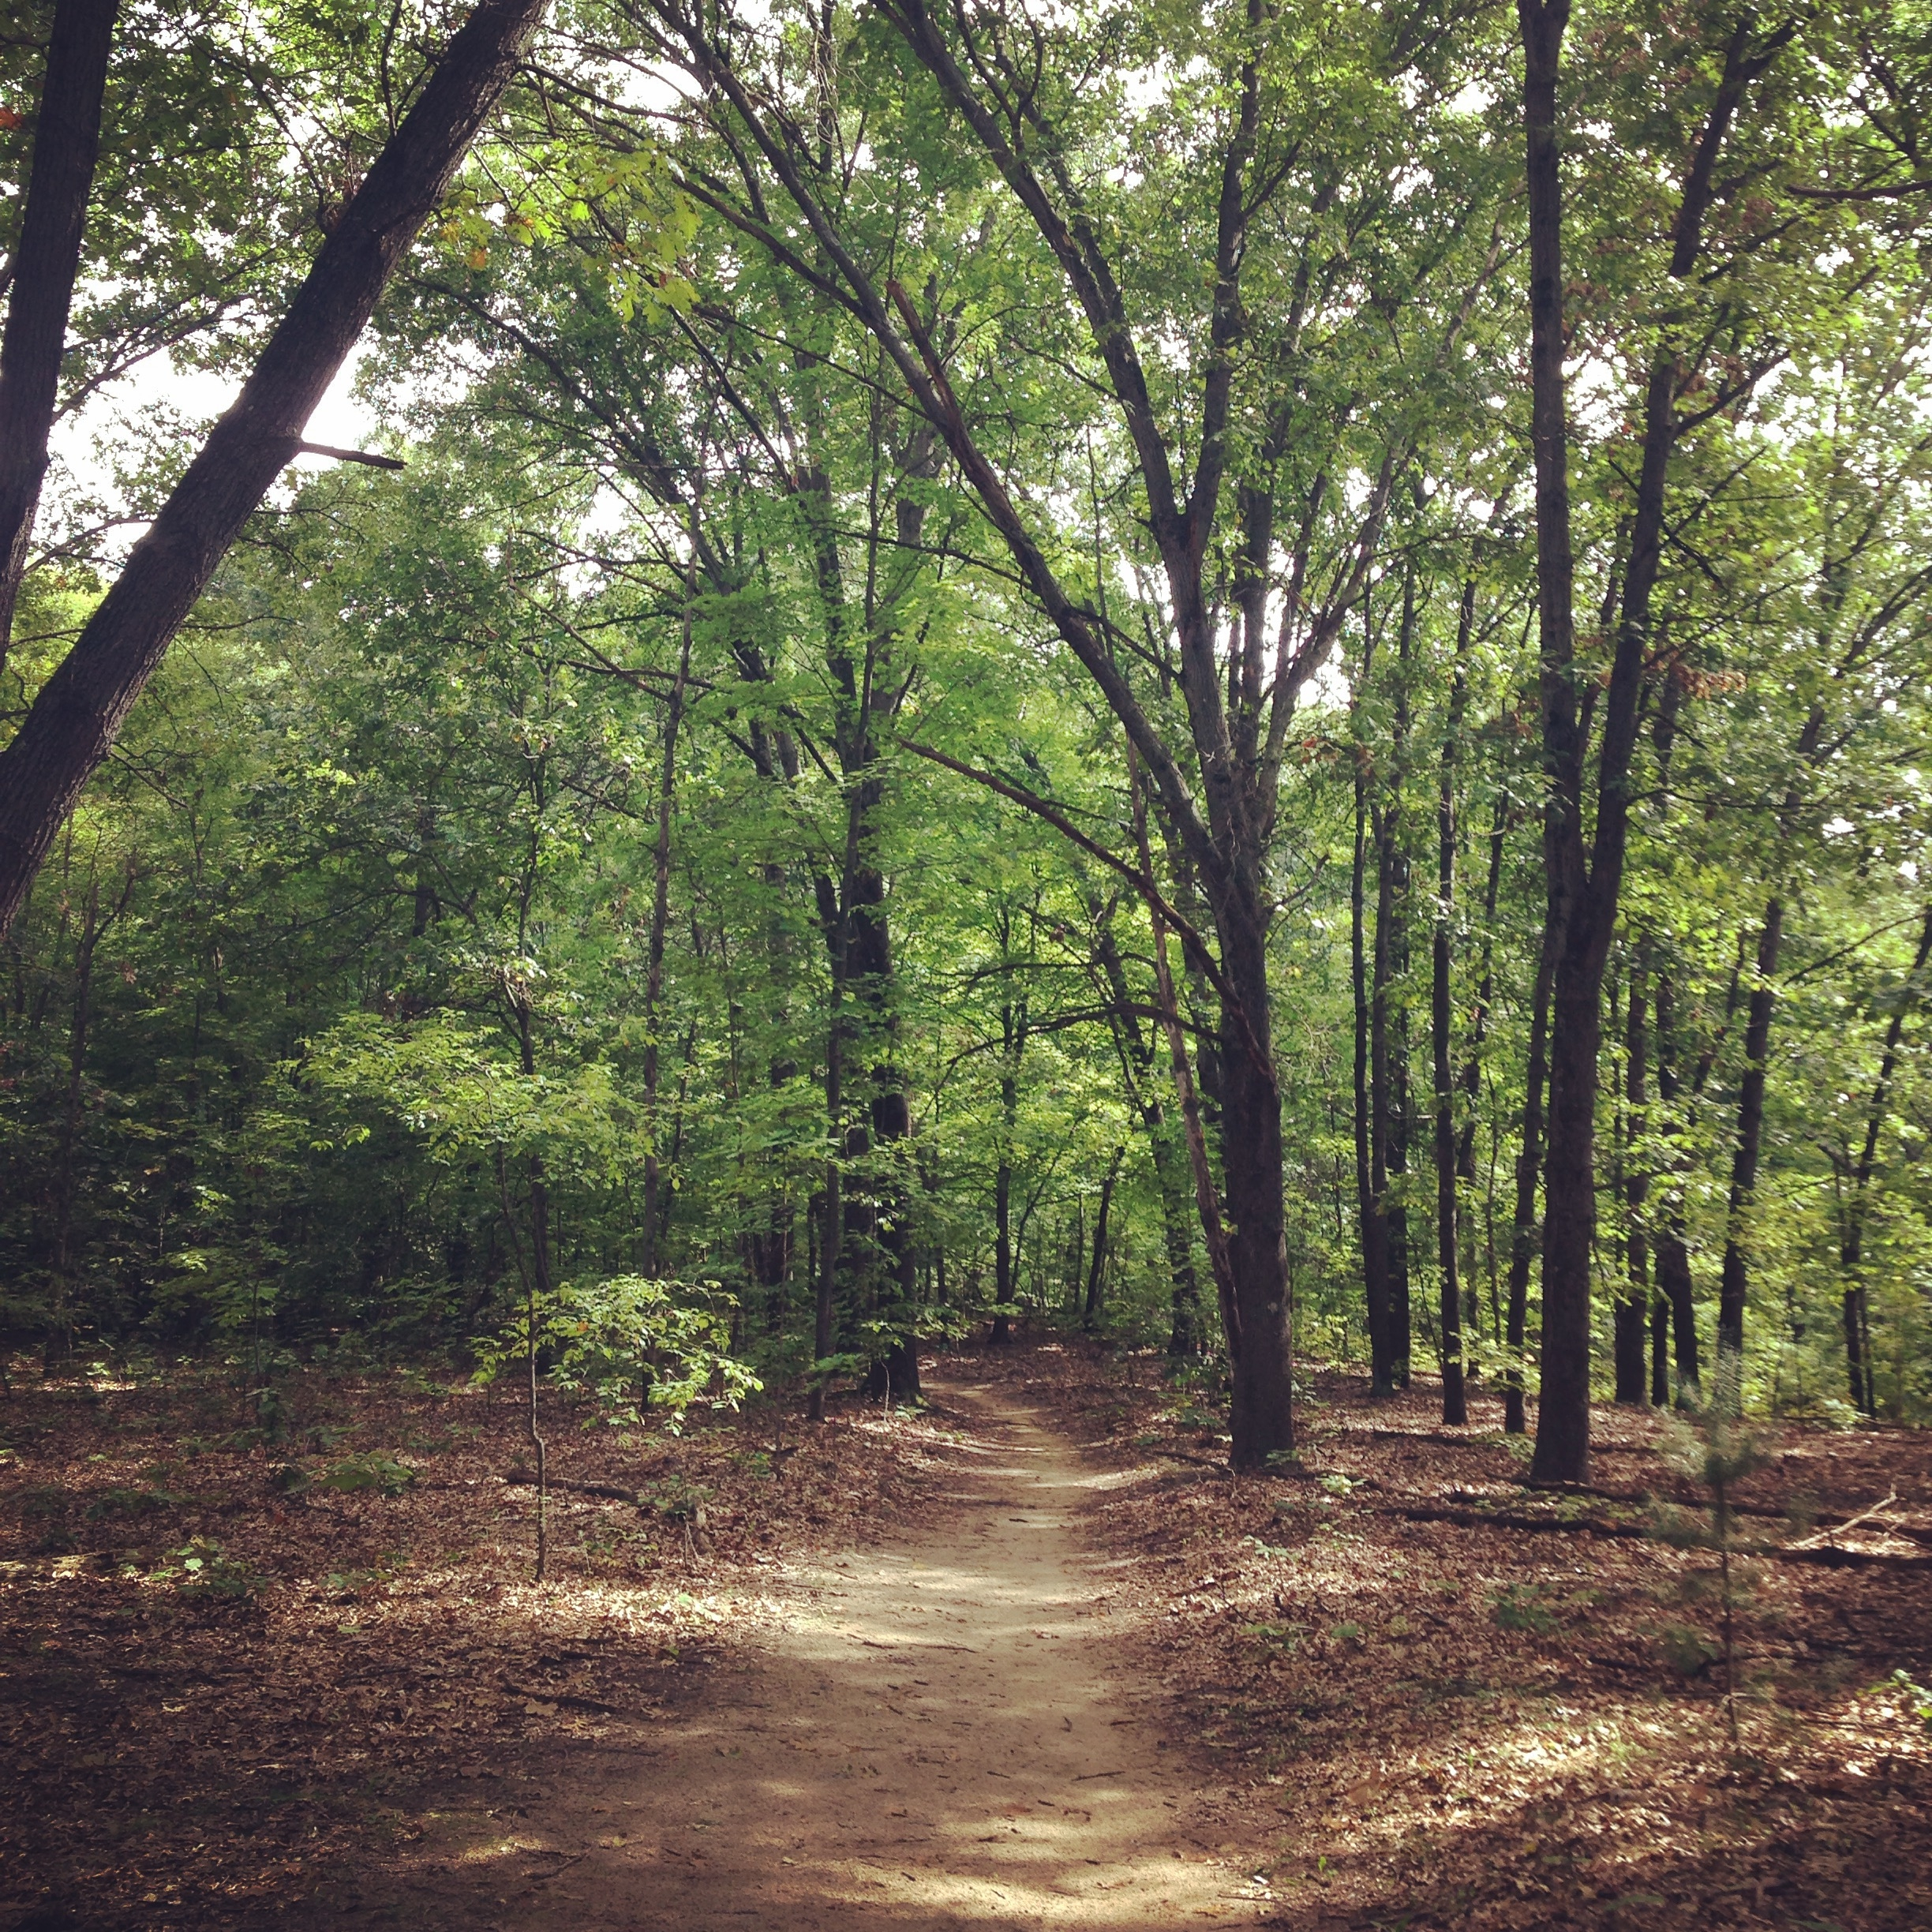 A calm looking and lighted forested trail.